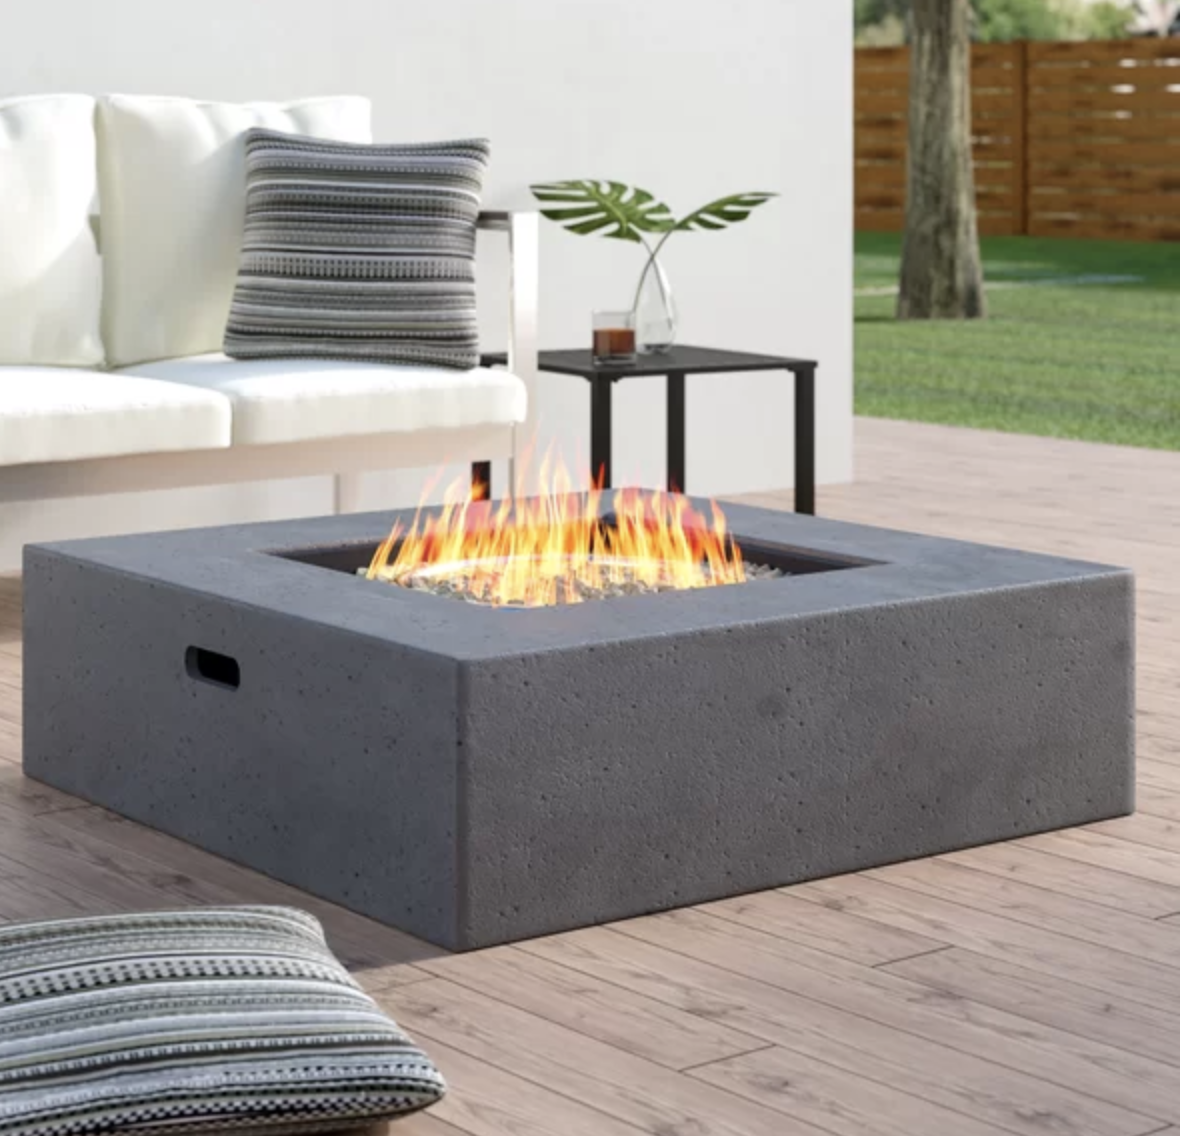 olivet-propane-fire-pit-table